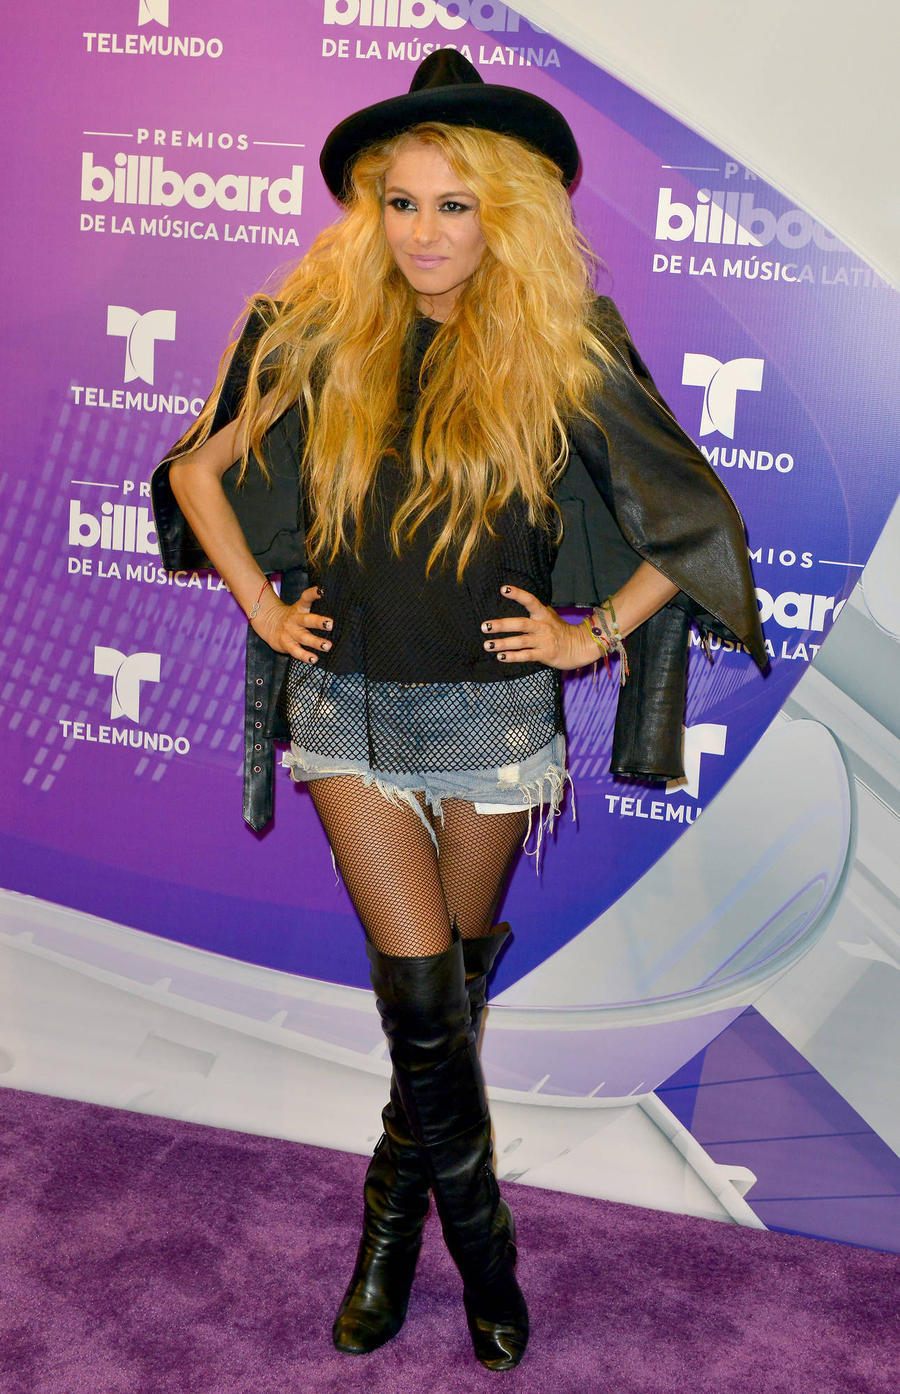 Paulina Rubio Eager To Add Daughter To Her Family In 2017